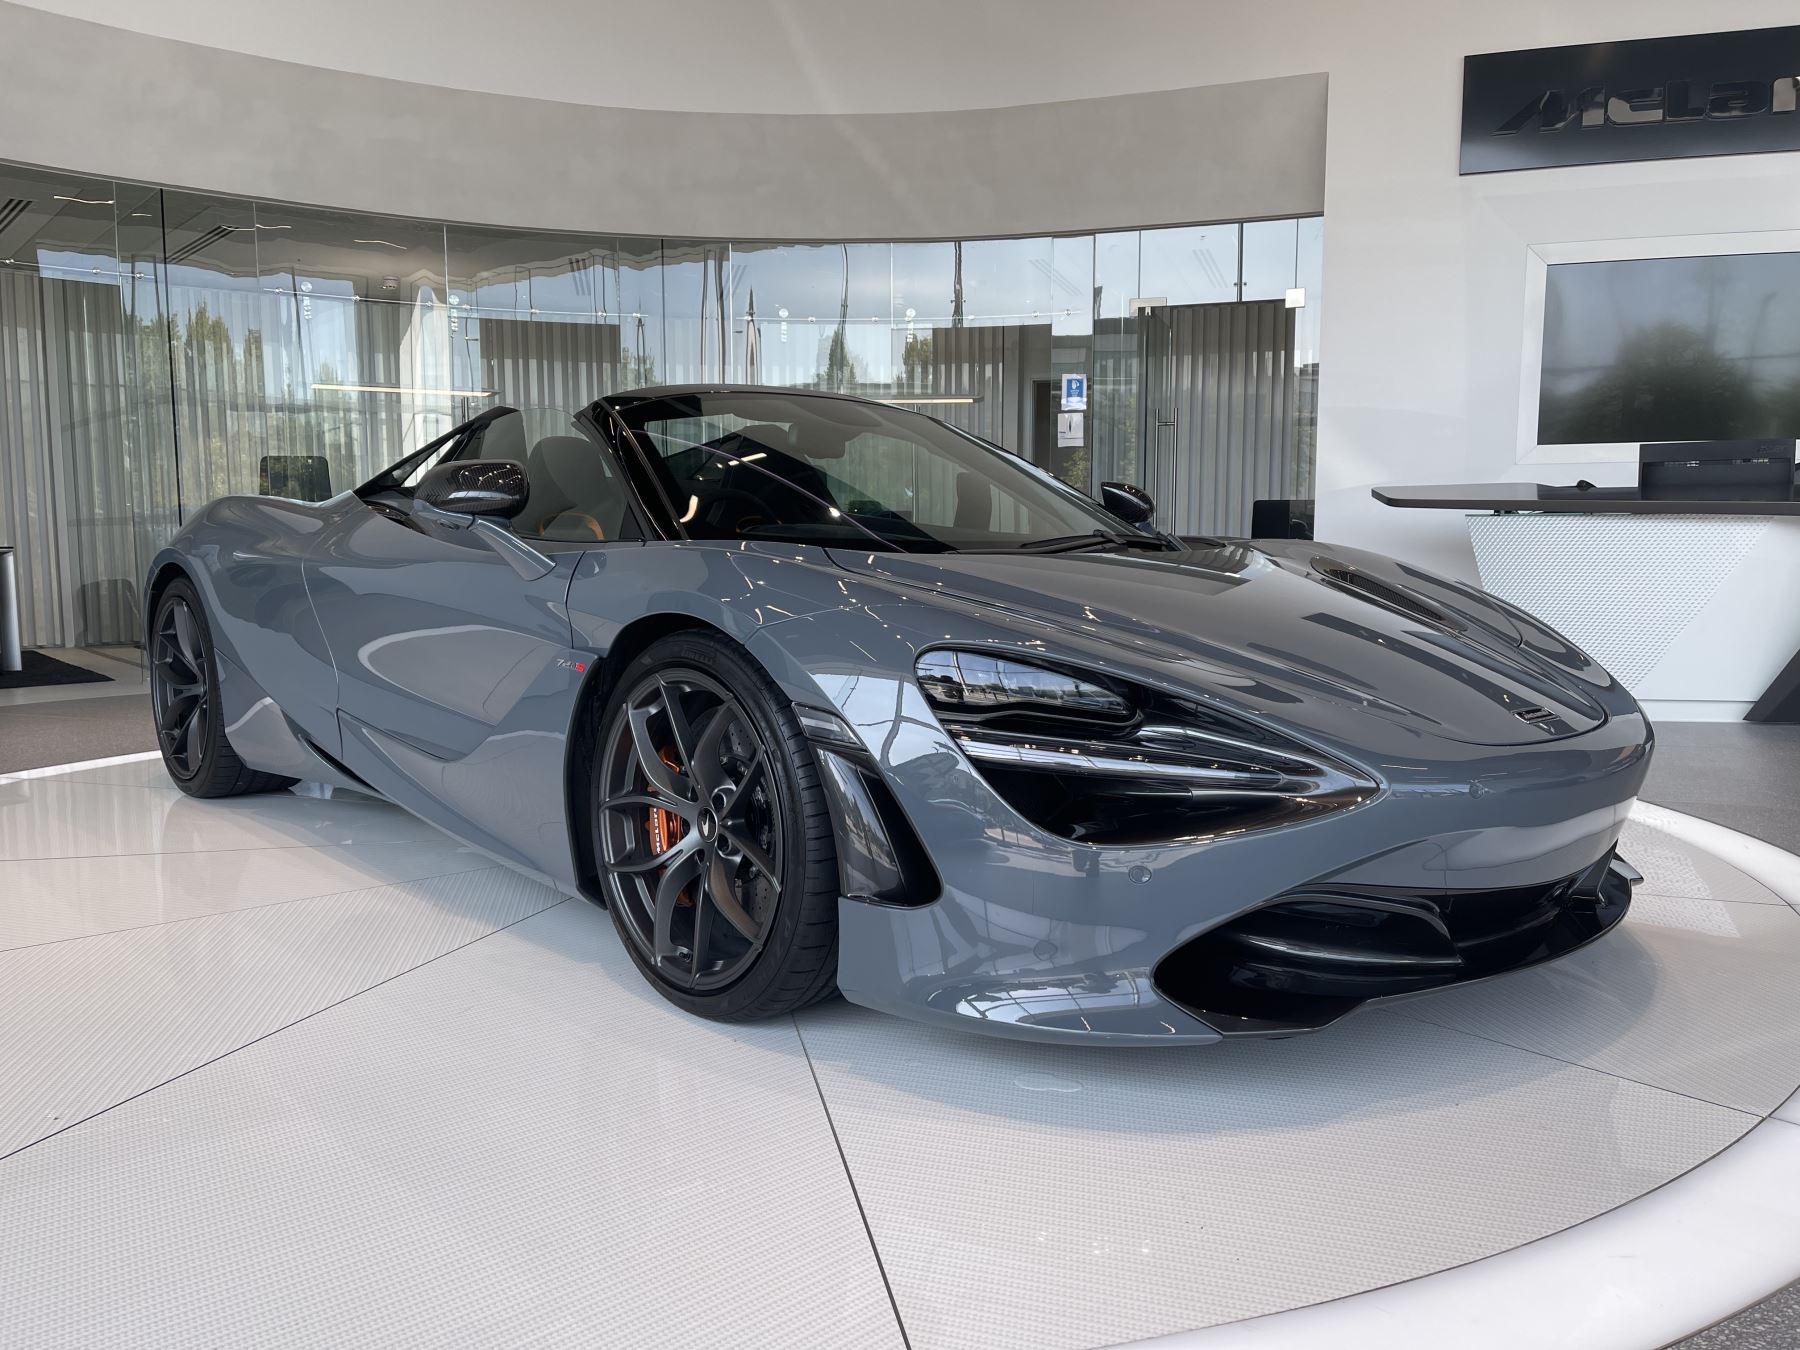 McLaren 720S Spider V8 2 DR PERFORMANCE VERY RARE COLOUR AND FULL CAR PPF 4.0 Automatic 2 door Convertible